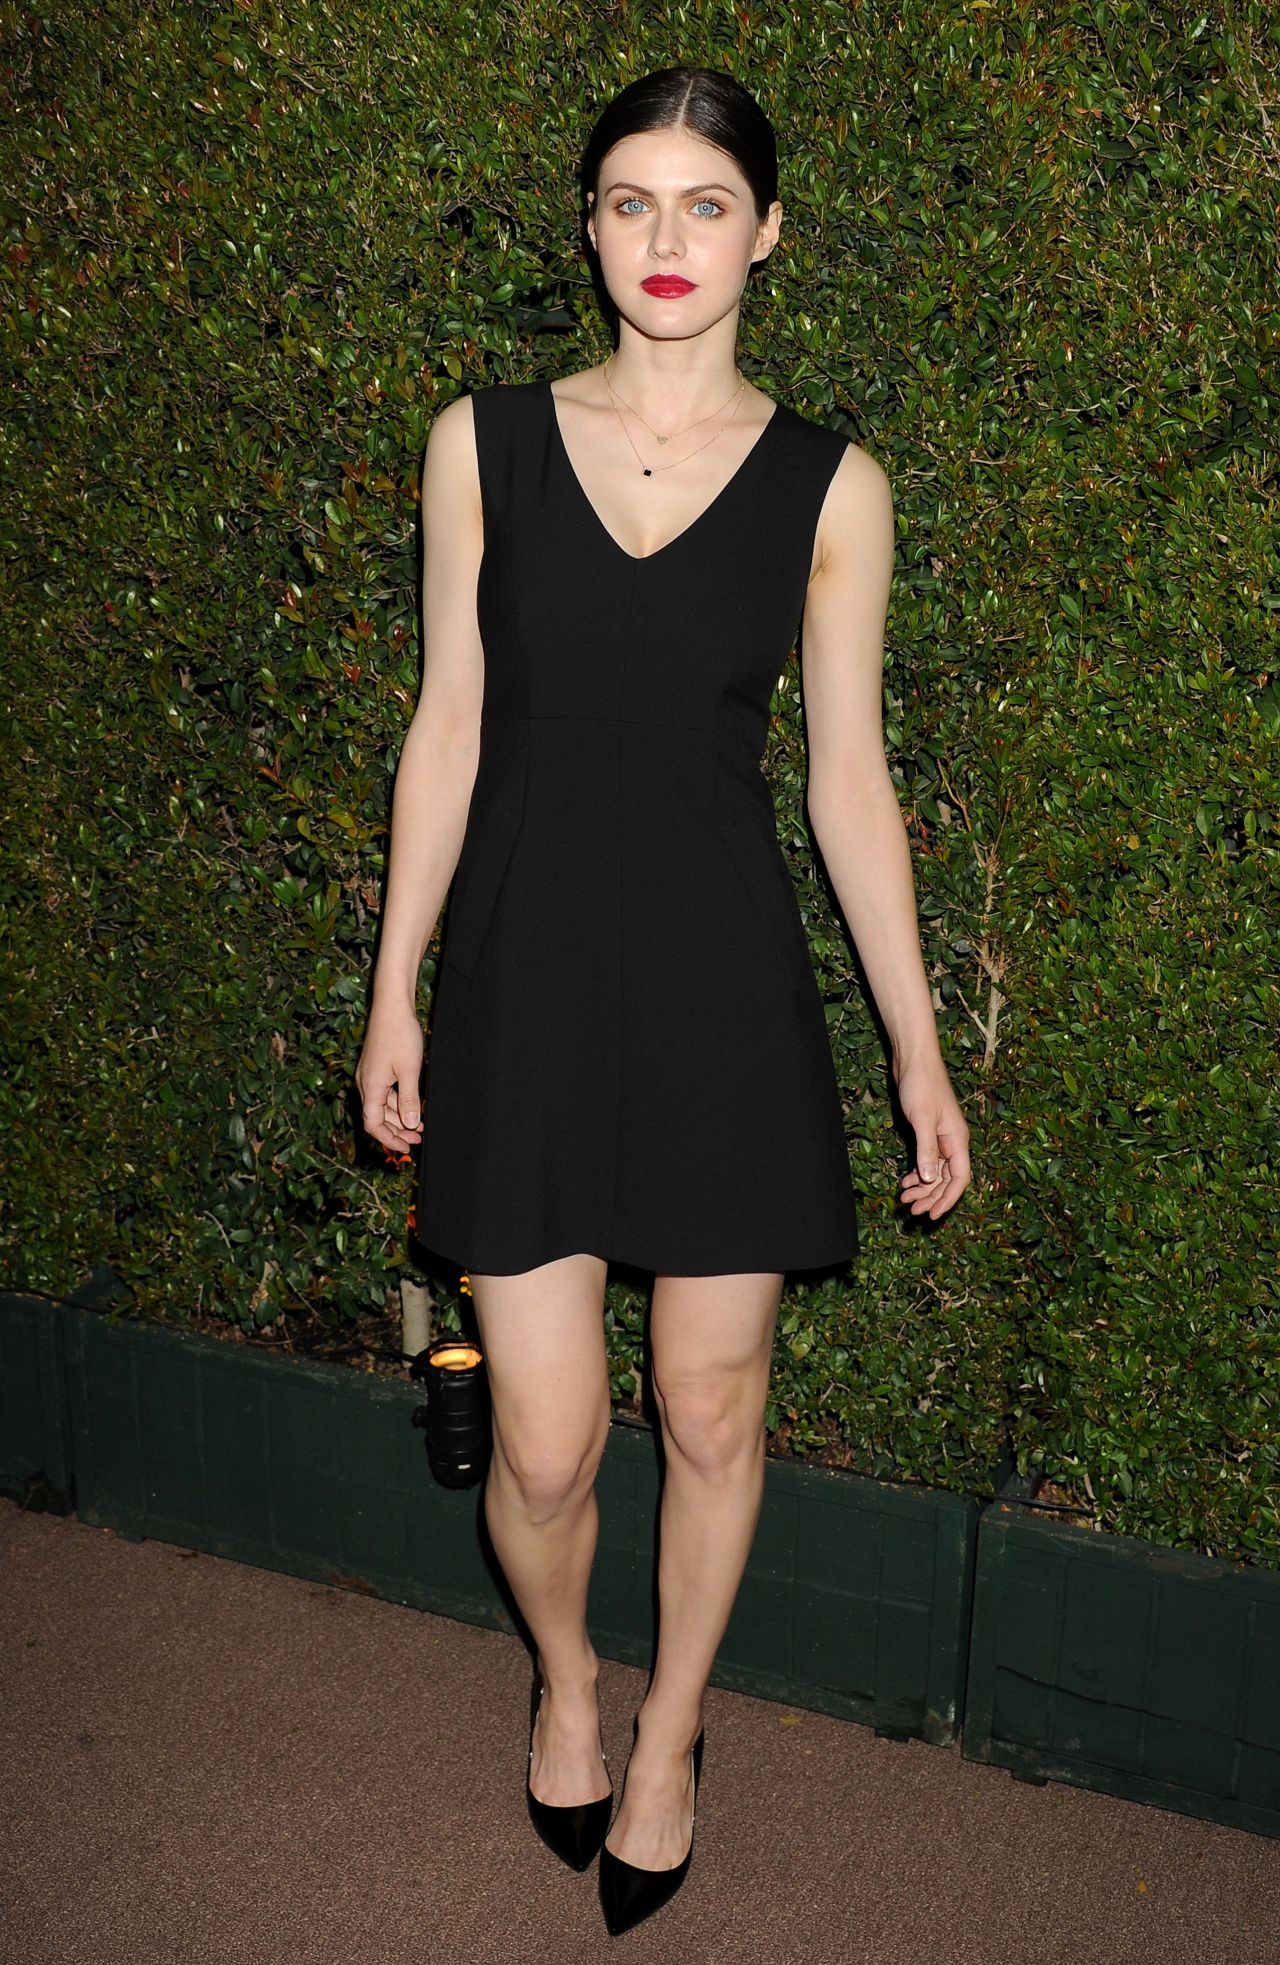 Alexandra Daddario - Decades of Glamour Event in West Hollywood, February 2014